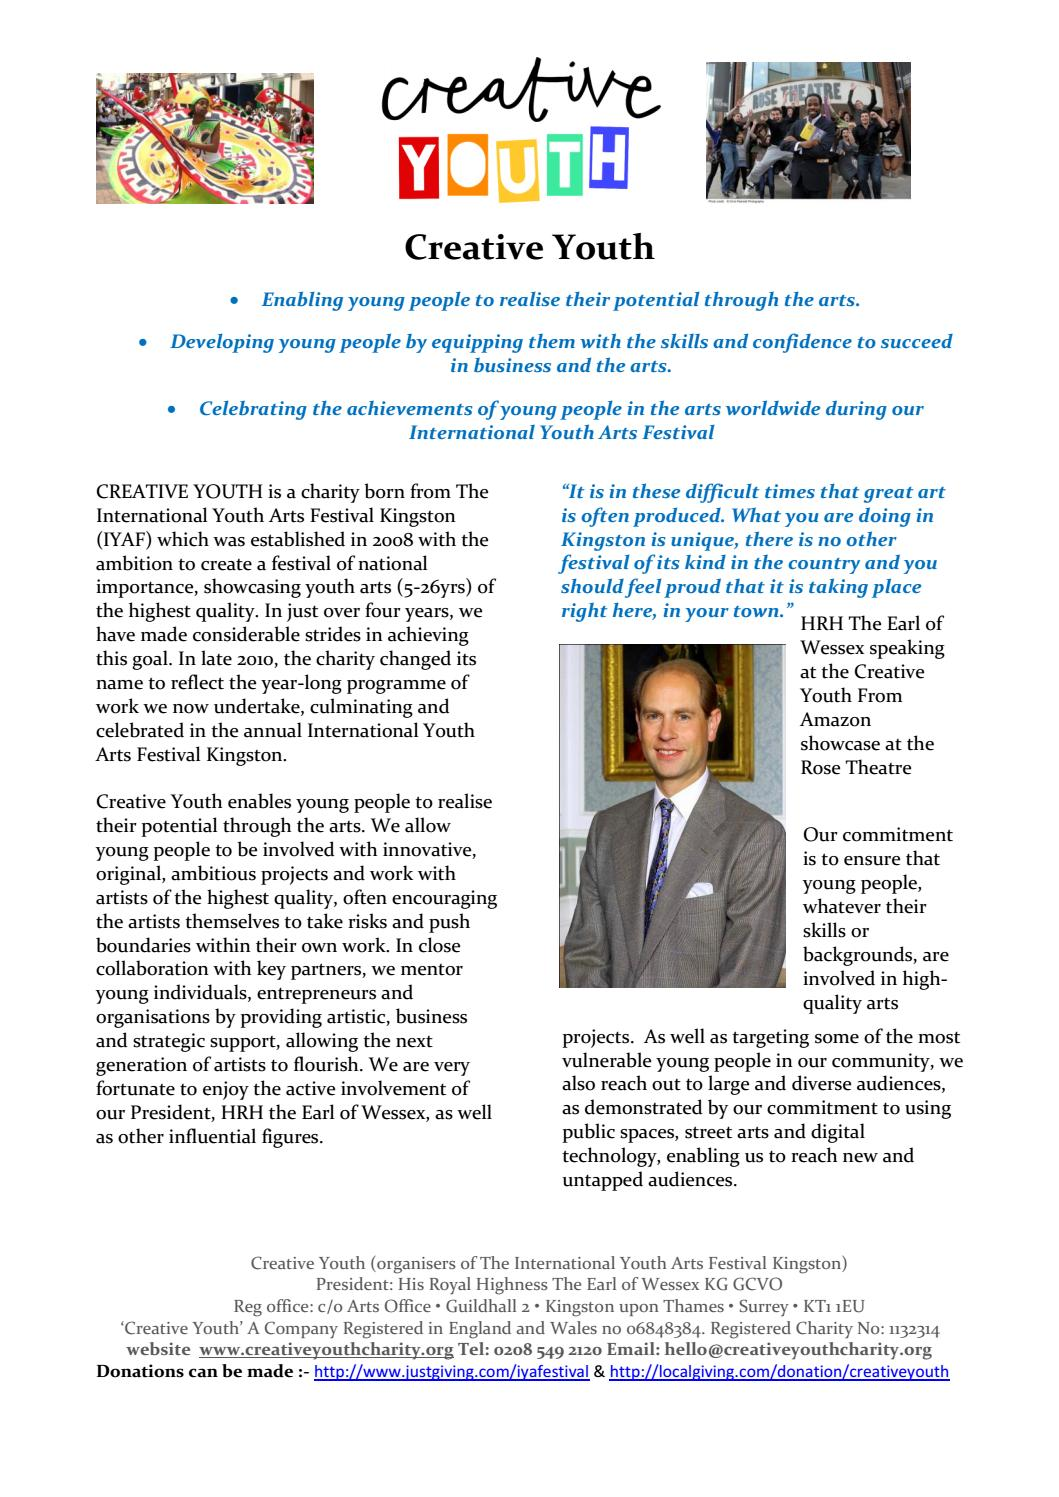 Creative Youth Promotional Brochure By Philip Hetherington Issuu